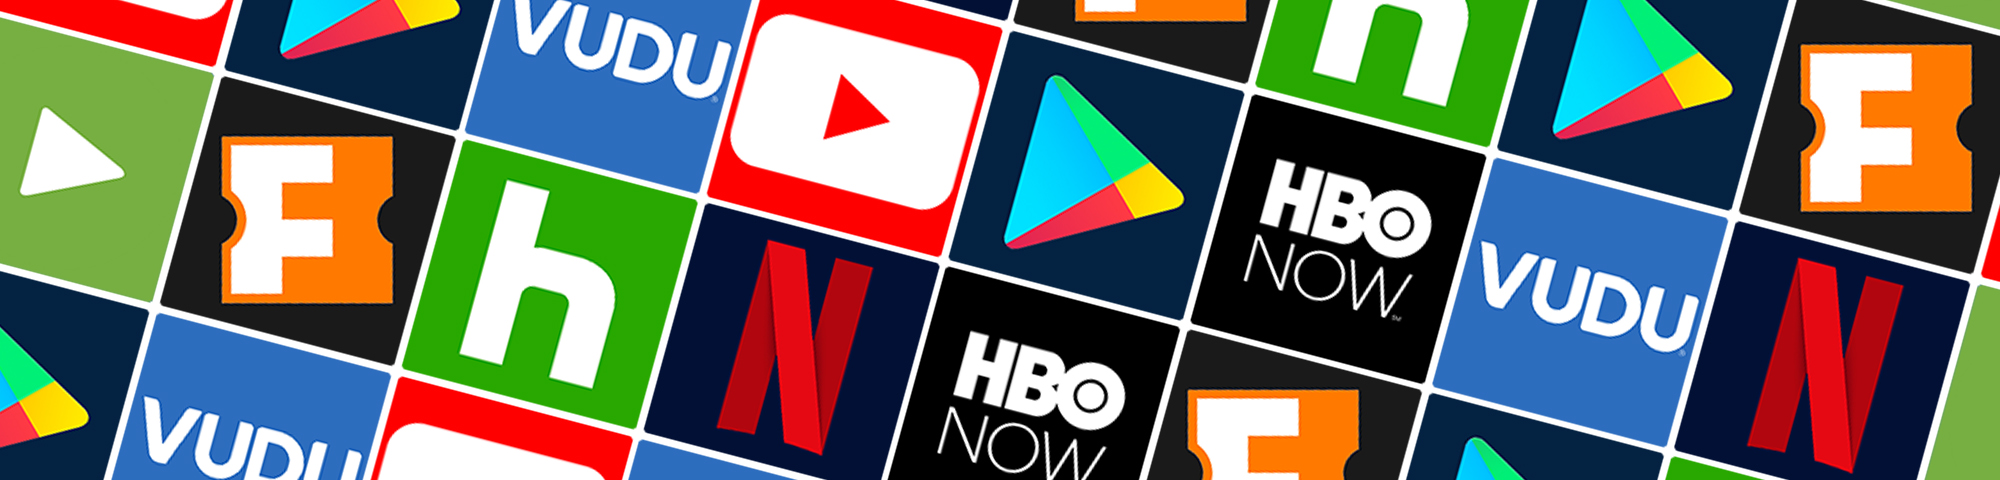 Best Movie and TV Streaming Sites 2019 - Hulu, HBO, Netflix, iTunes